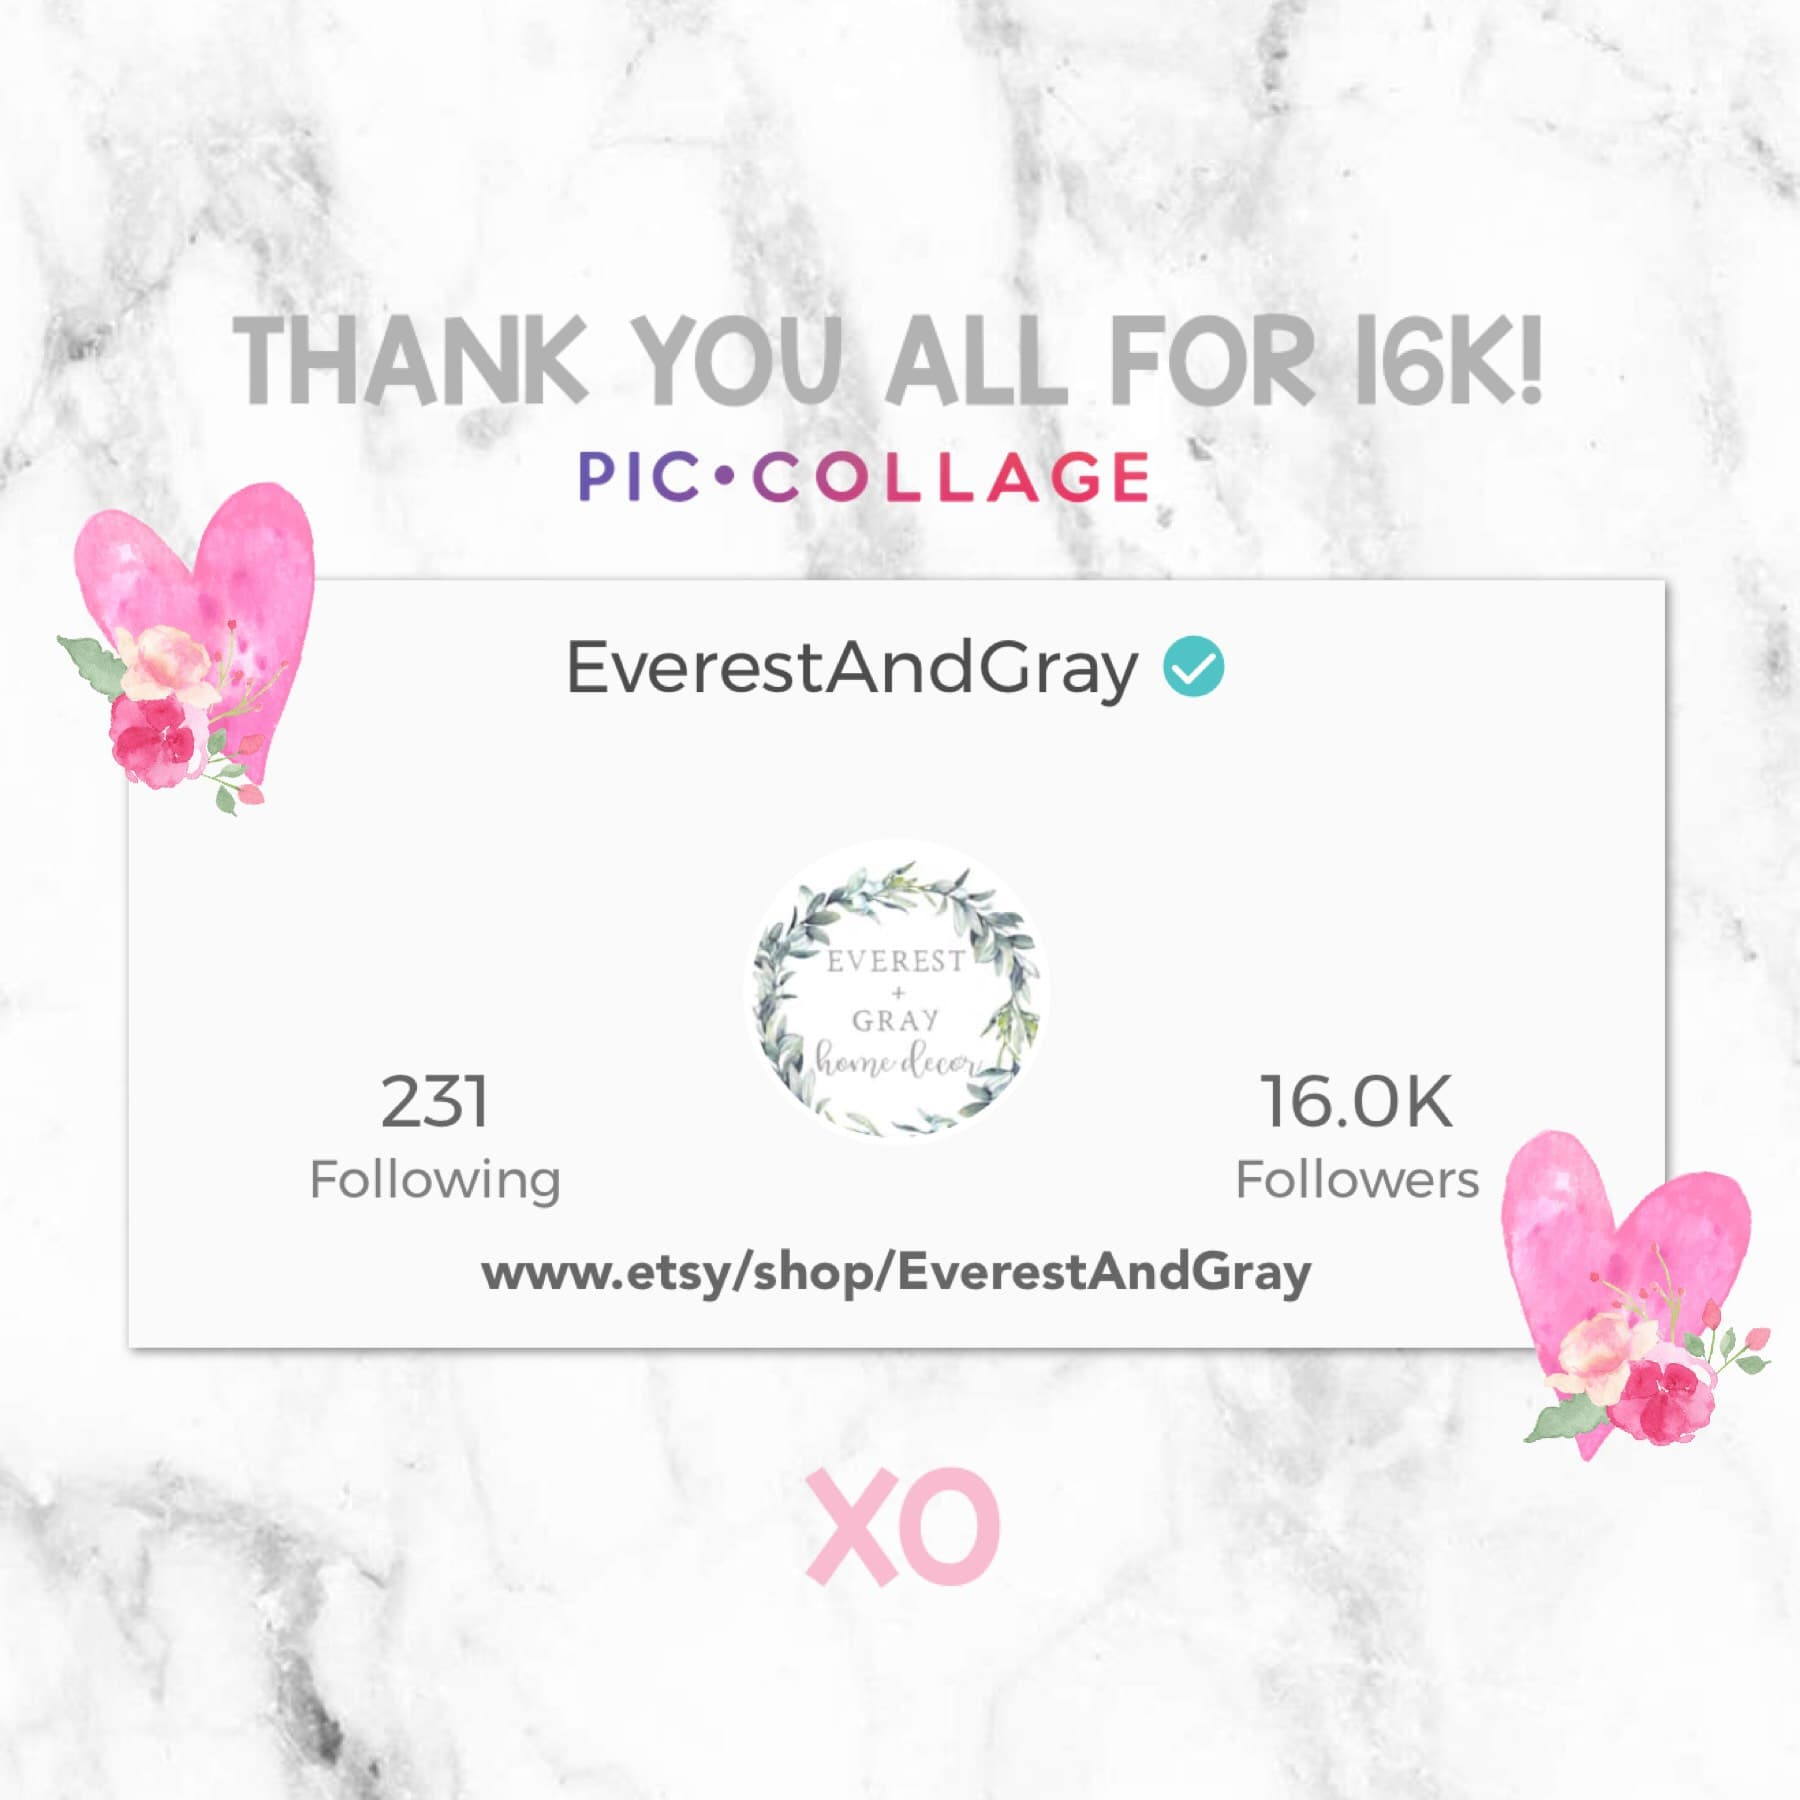 🌿Wow! Wow! WOW! Guys! 16k?!! Thank you all so much 🙏🏽 for following and for all the likes, comments, everything! I do appreciate it all. Have a wonderful weekend!!♥️ @piccollage #piccollage #love #follow #like